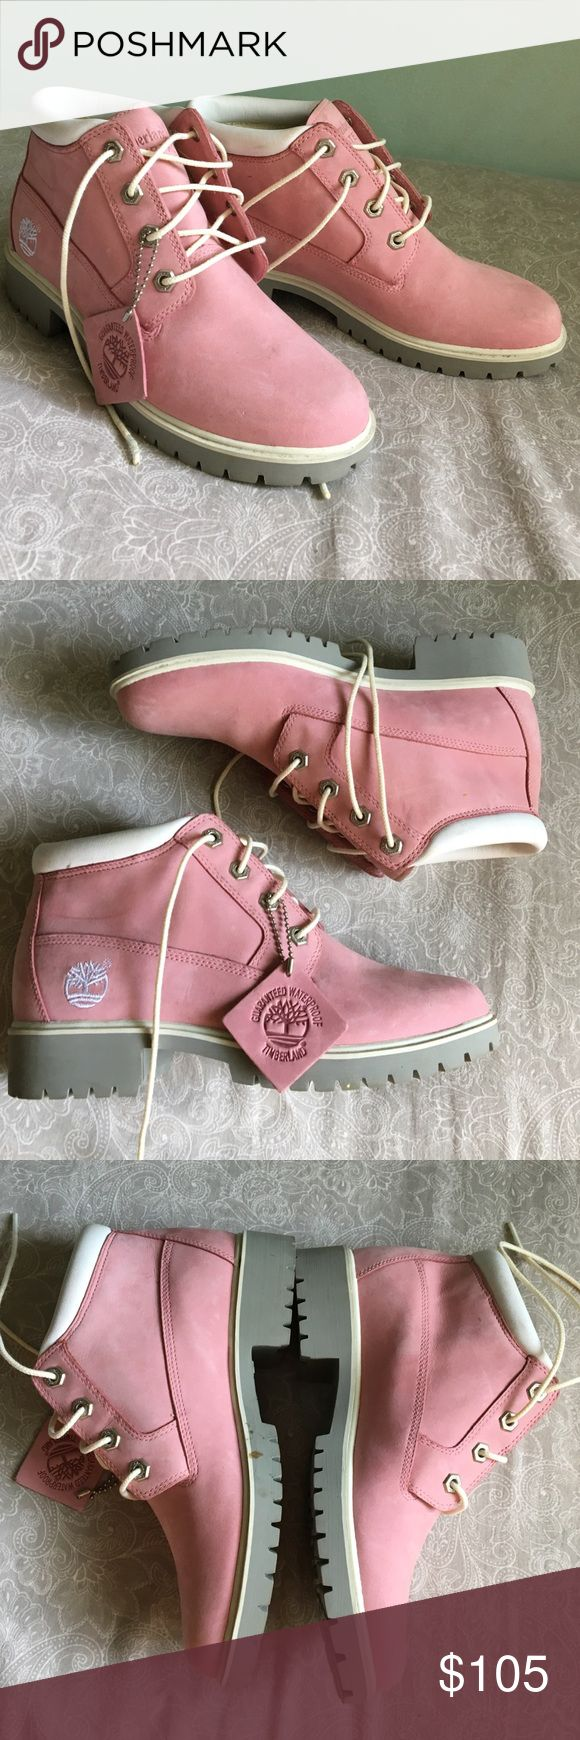 NWOB Pink Timberlands waterproof boots Practically brand new! Just missing the box. Still has leather Timberland tag attached. 100% real leather and waterproof material. White laces. Clean bottoms. No creases!   ↠ No trades  ↠ 15% bundle discount  ↠ Lowball offers are declined  ↠ I ship same or next day  ☞ Follow my Instagram- Seahighmarket Timberland Shoes Ankle Boots & Booties